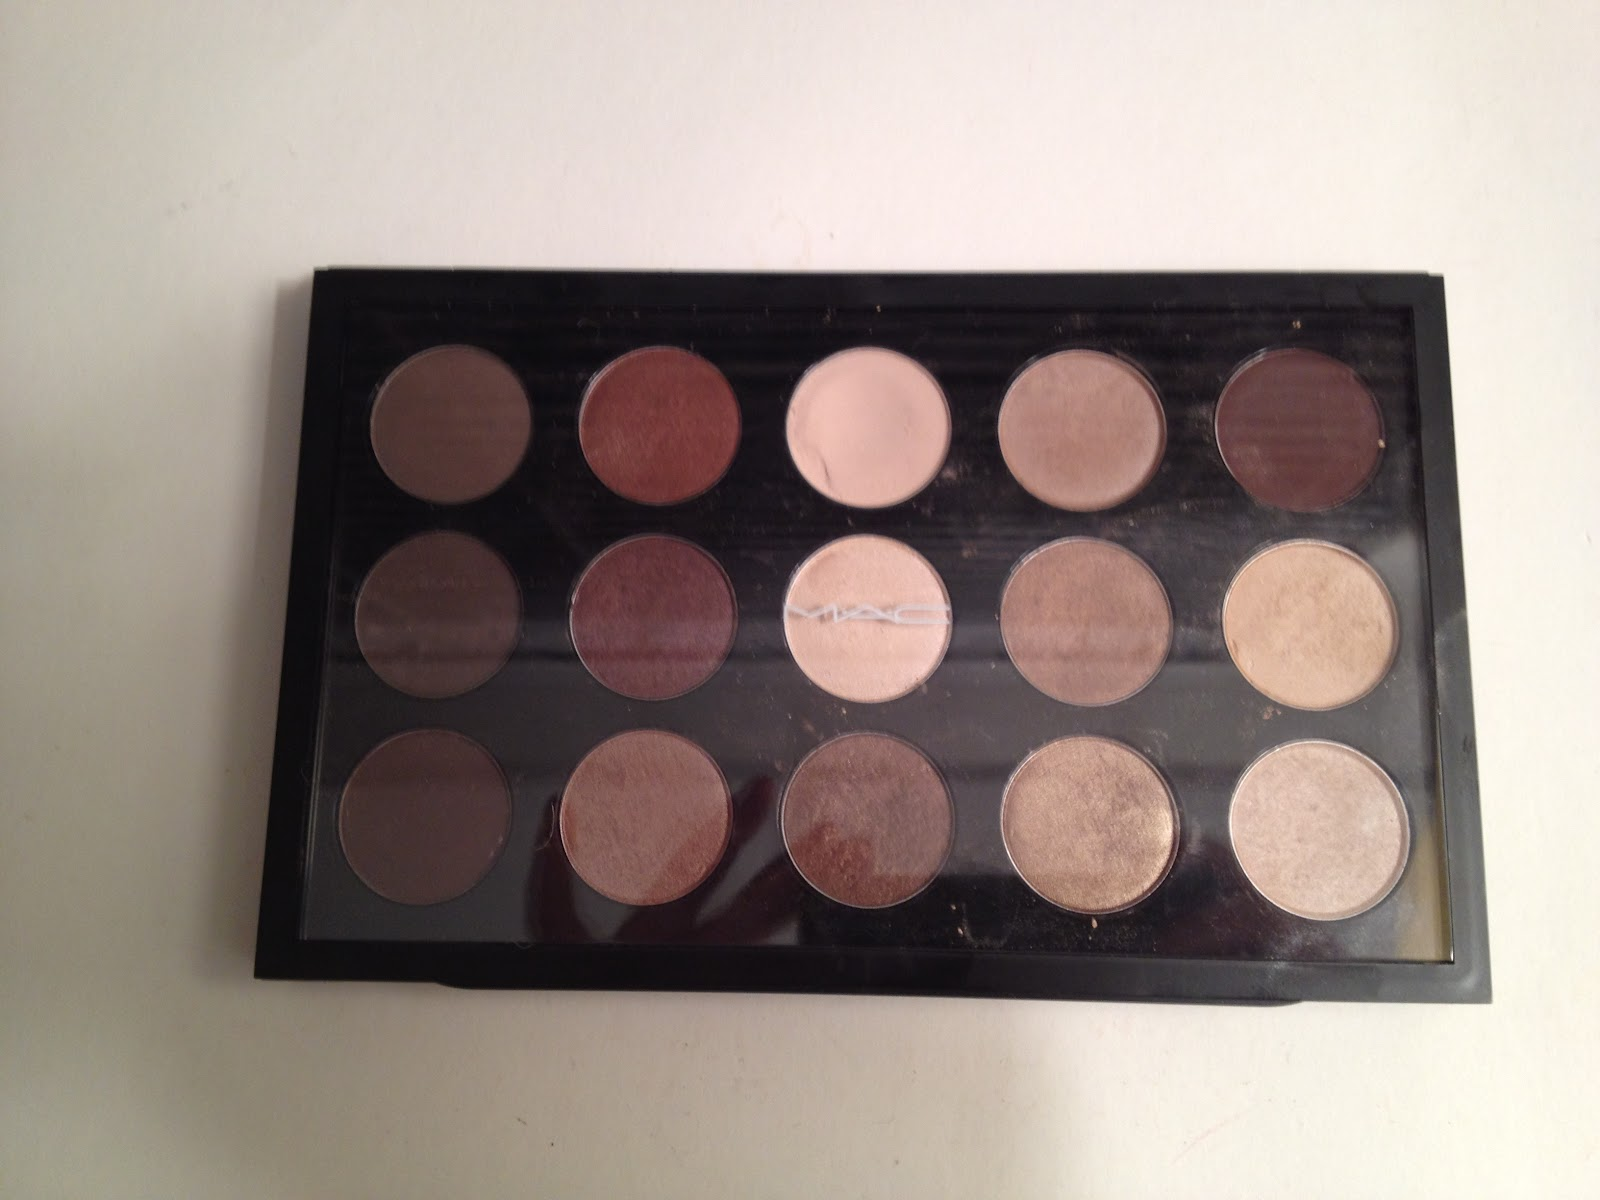 Newly released mac pro palettes